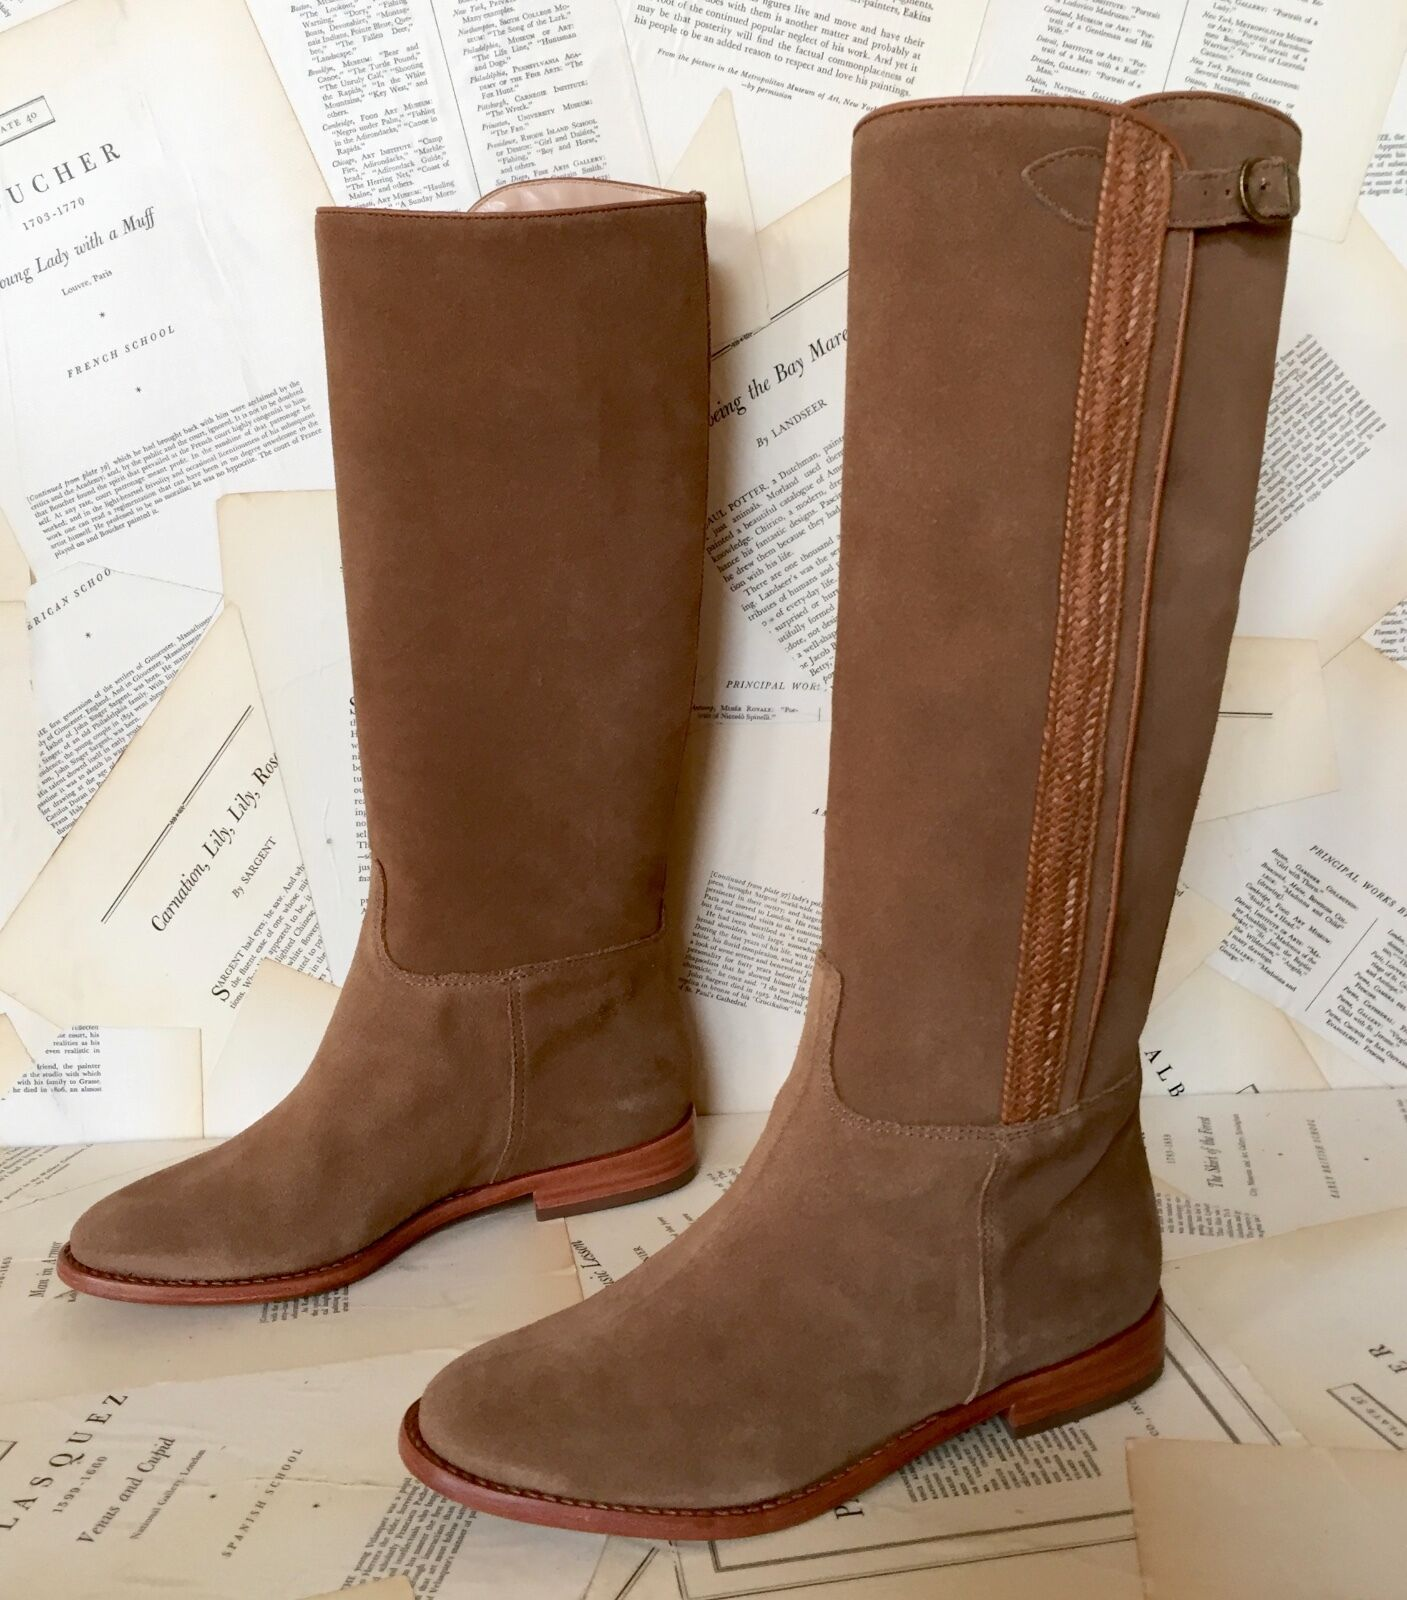 NIB Anthropologie Candela Tan Suede Side Braid Buckle Pull On Riding Boot 6